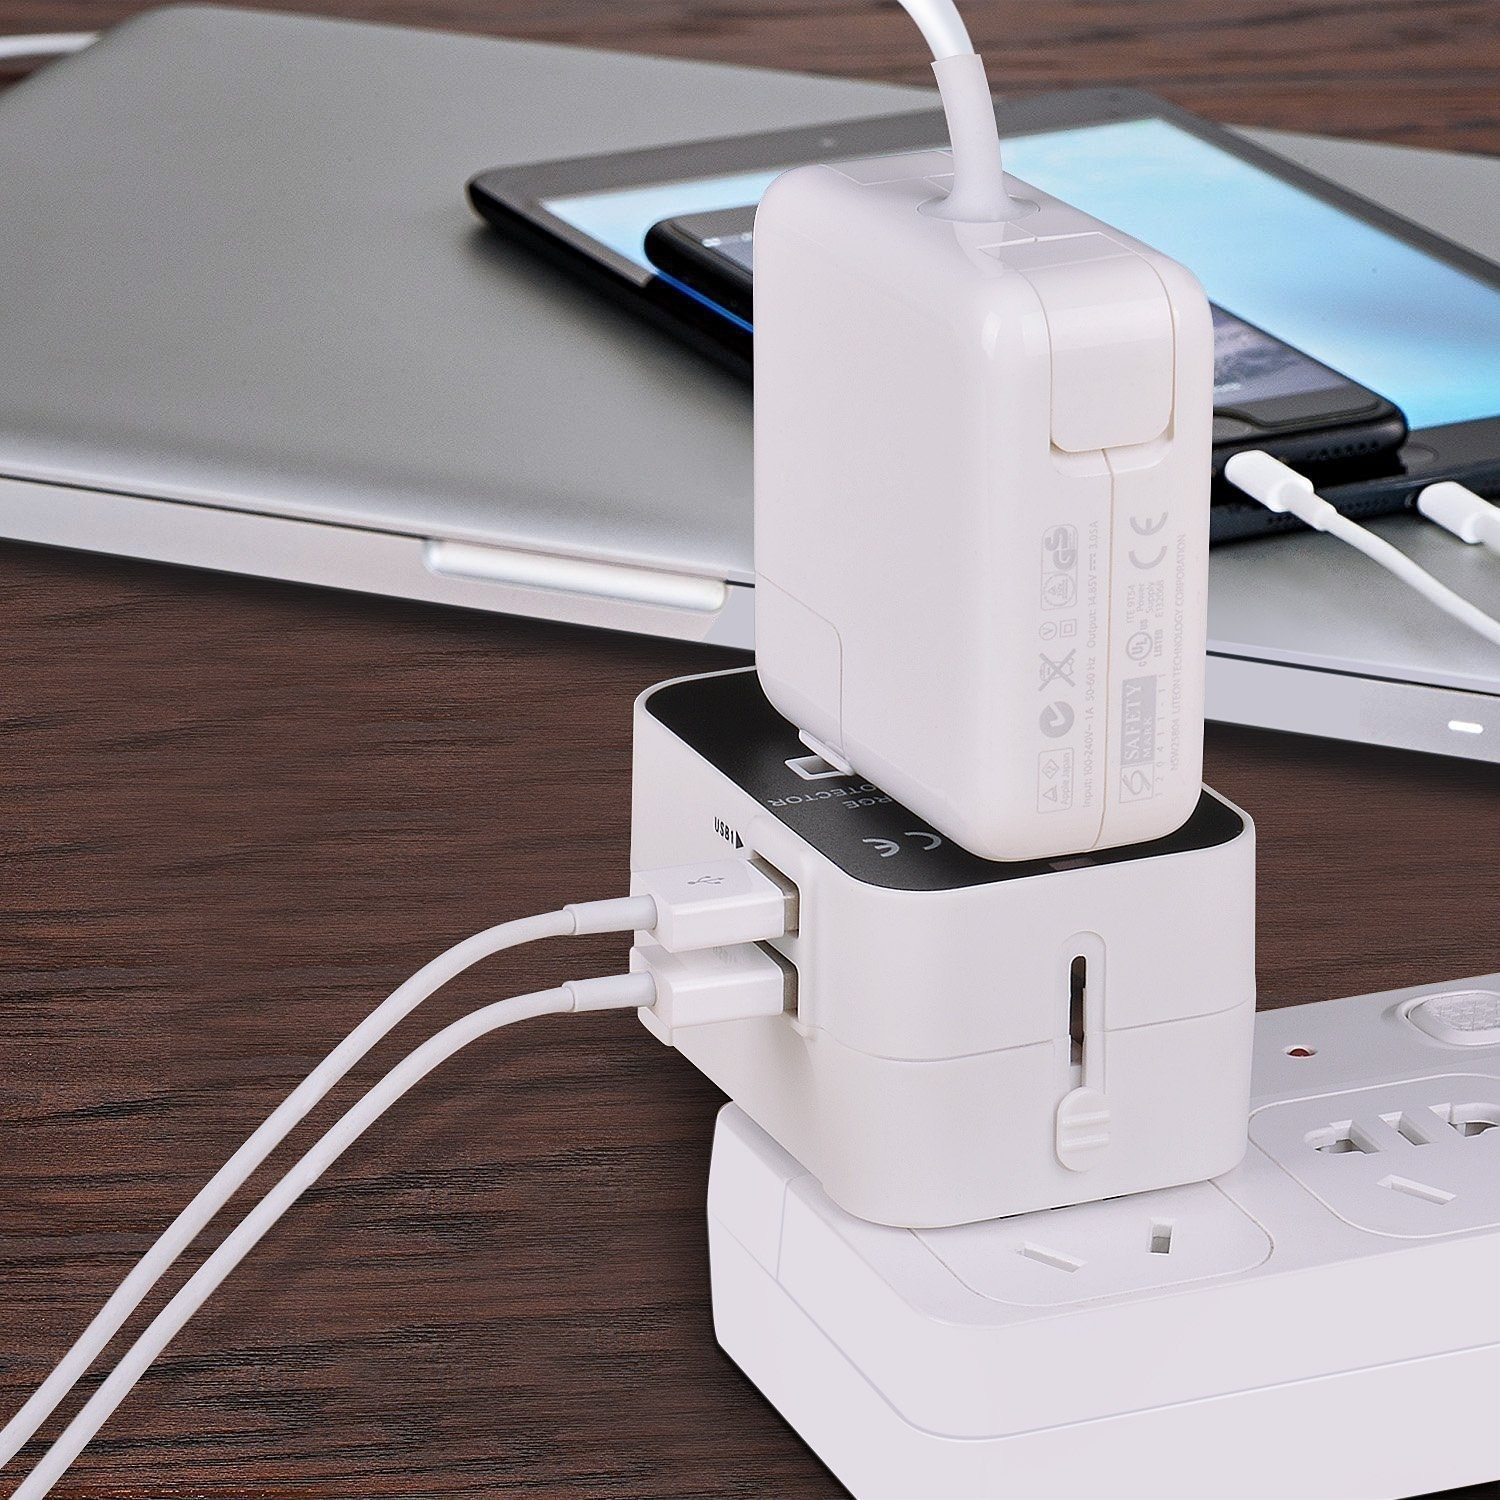 universal travel adaptor with two cords plugged into it